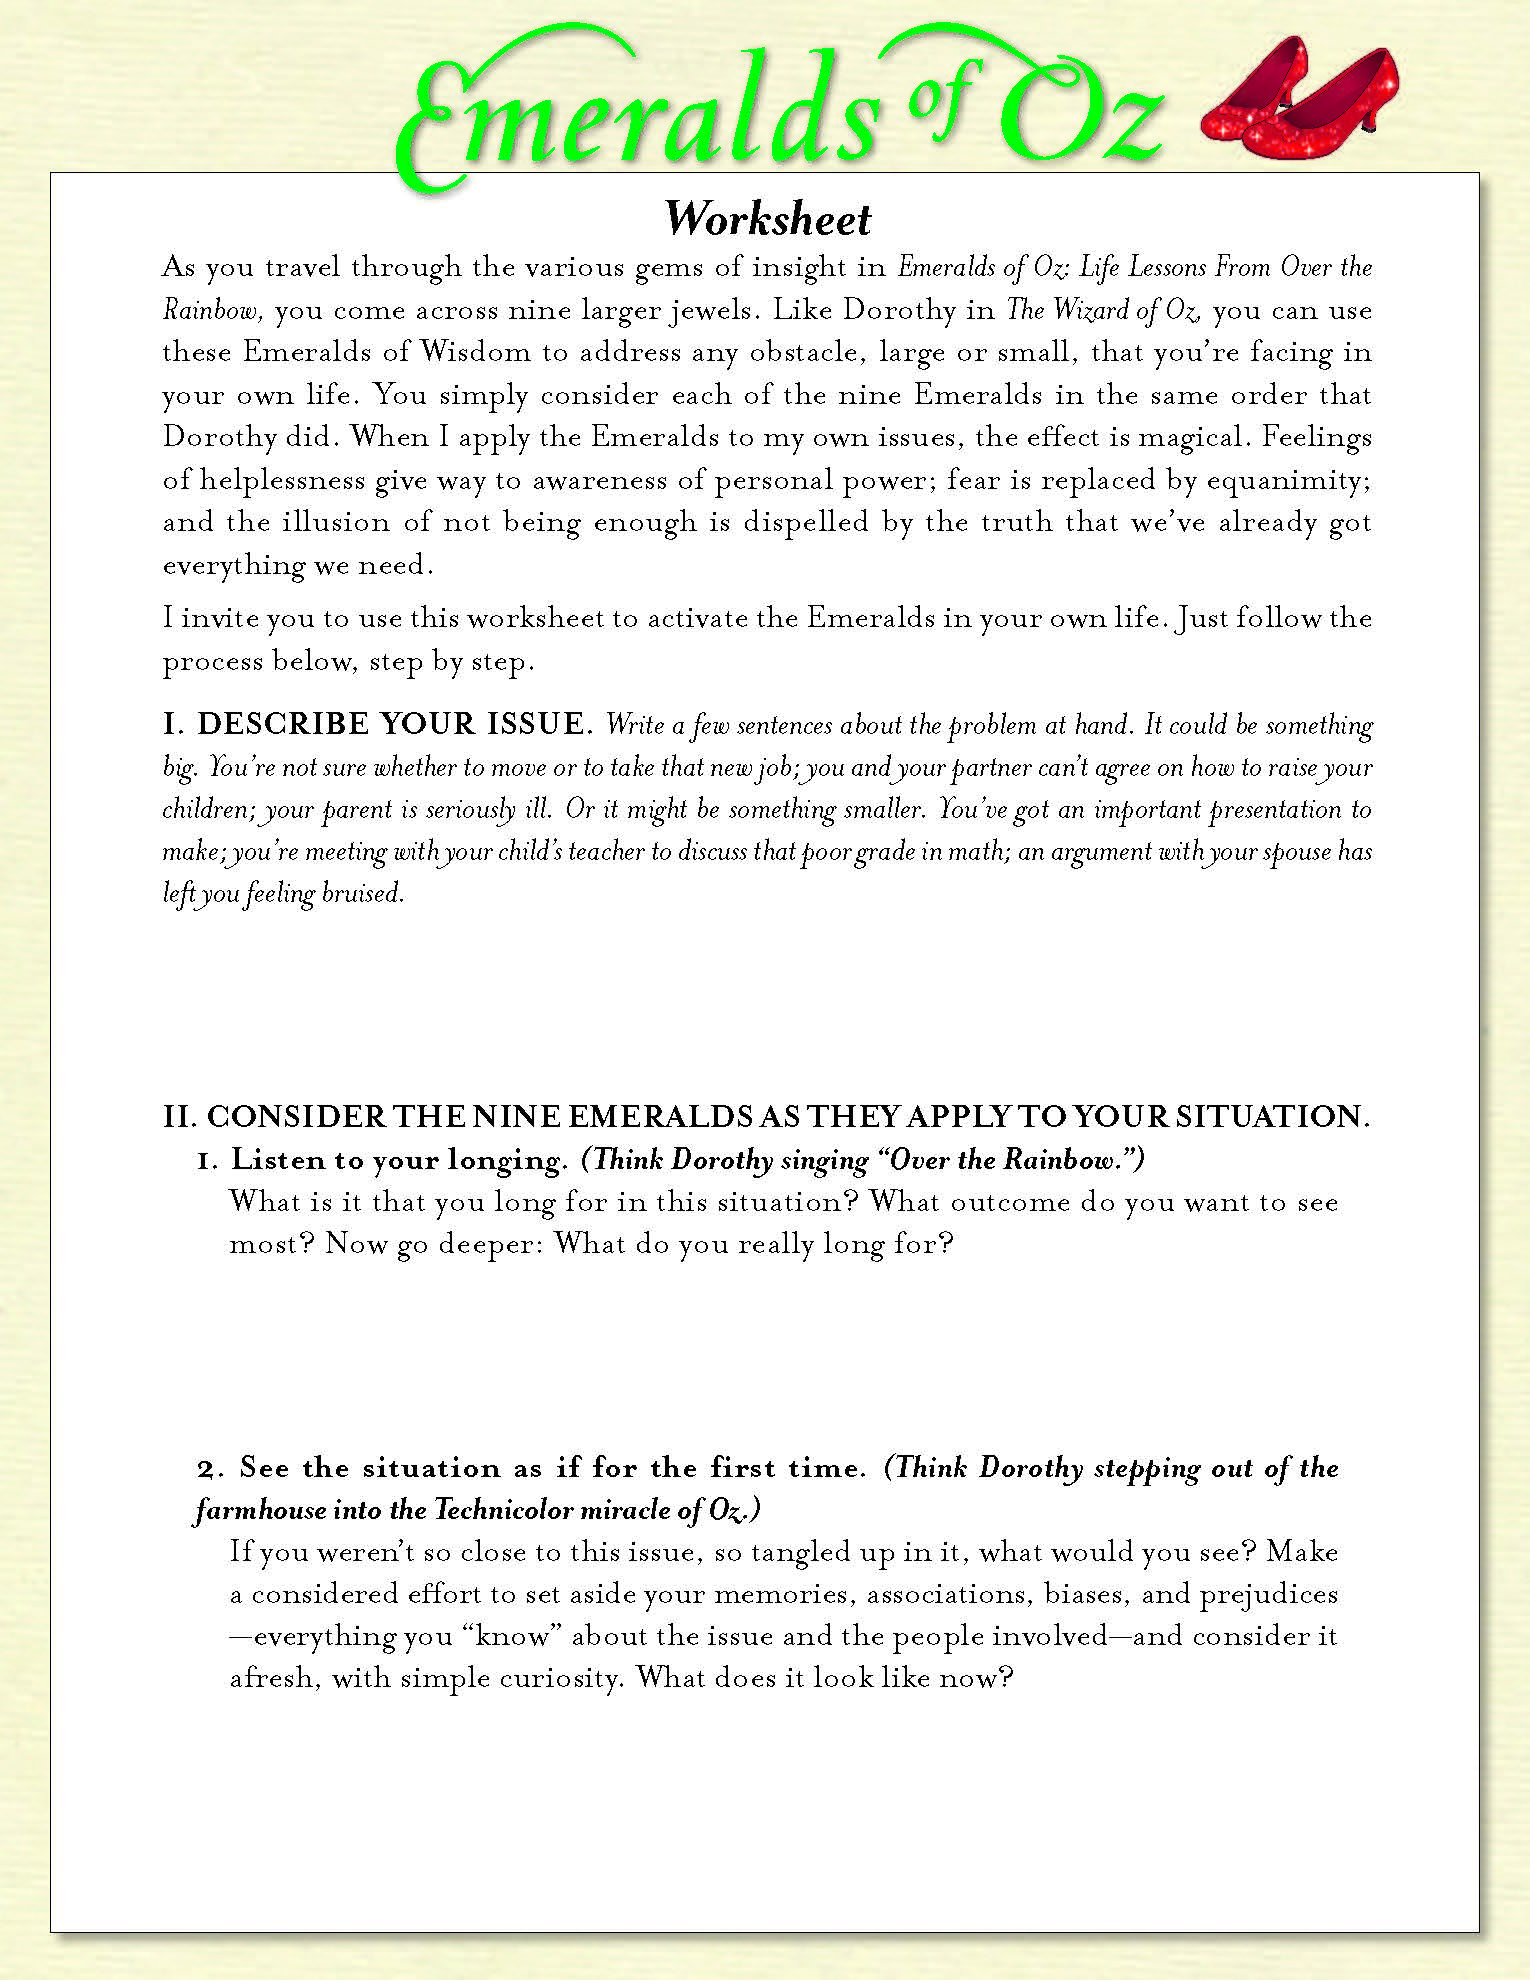 EmeraldsofOz-Worksheet_Page_1